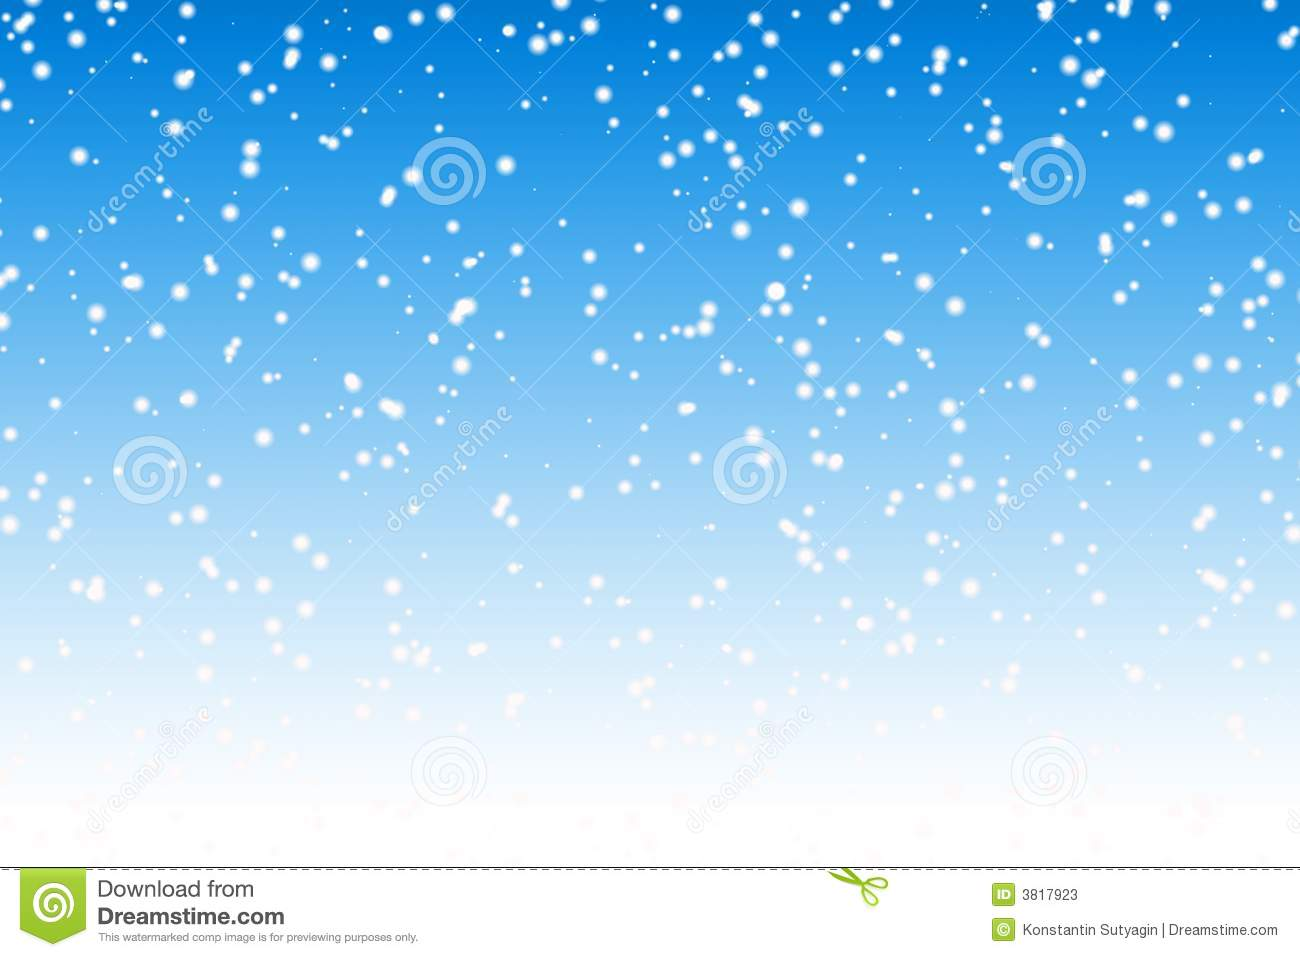 Snow Background Clipart Snow Background-Snow Background Clipart Snow Background-9